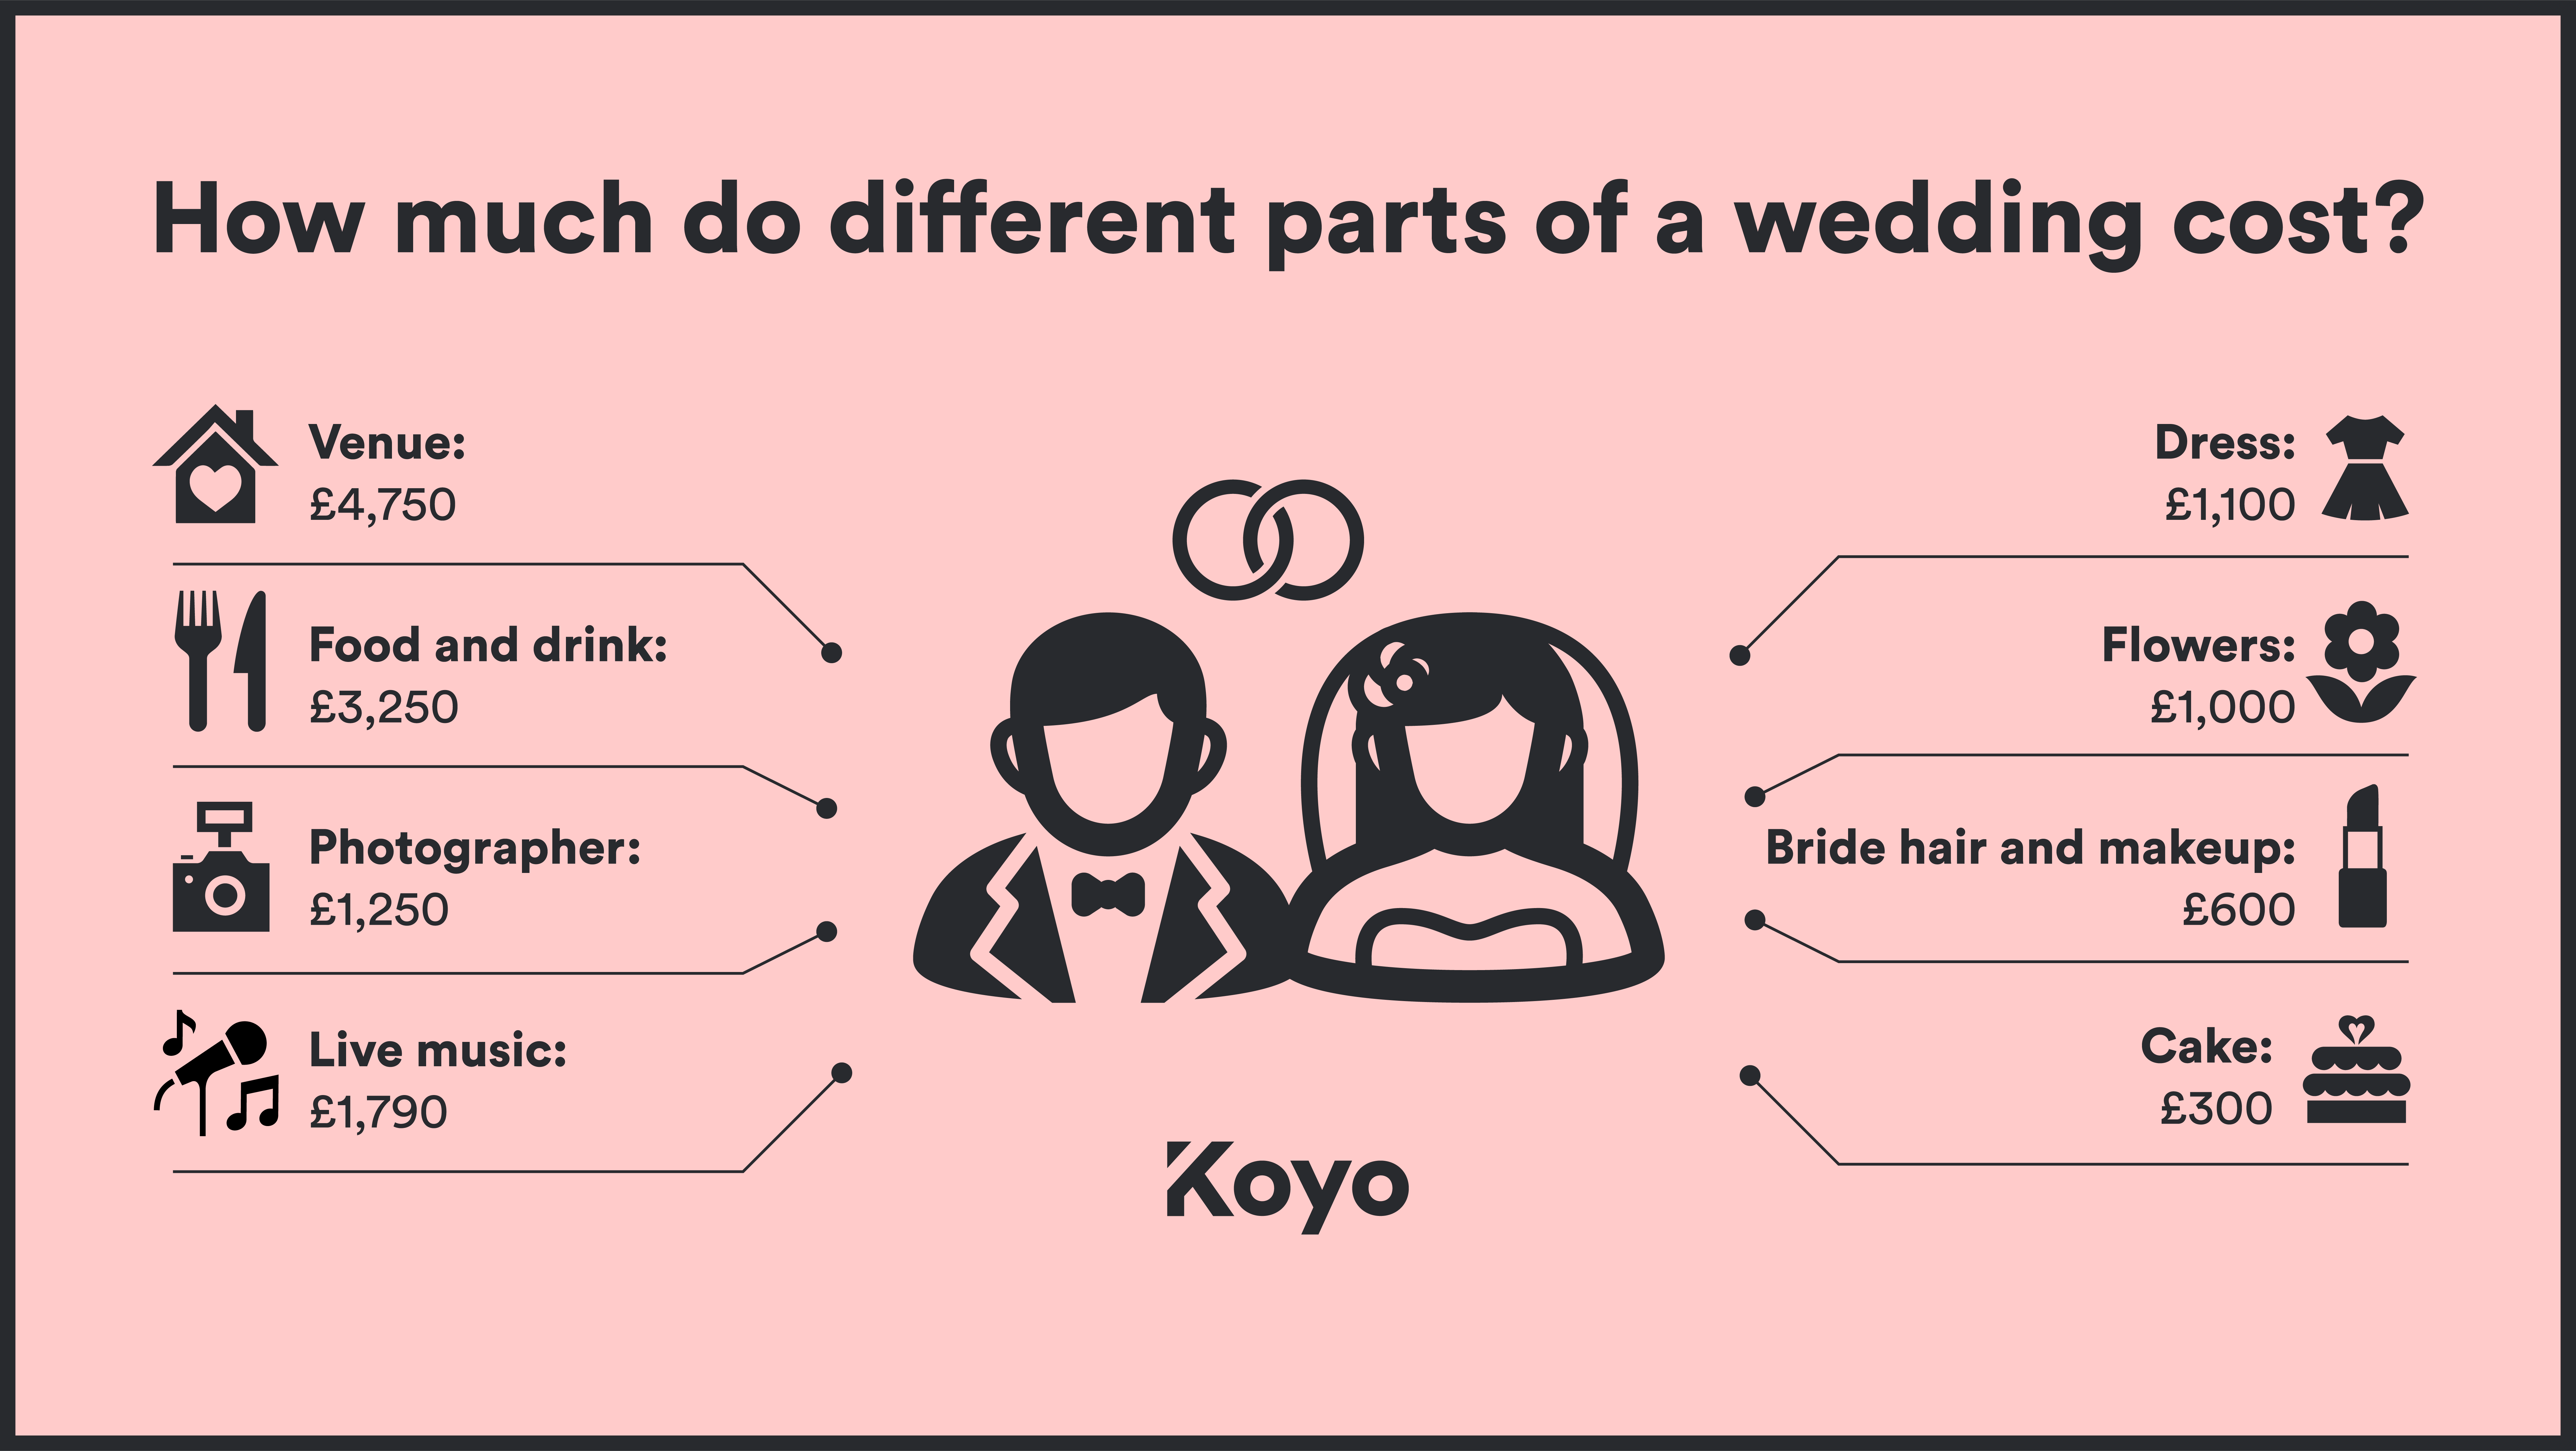 The average costs of different parts of a wedding, to make planning wedding finance easier.